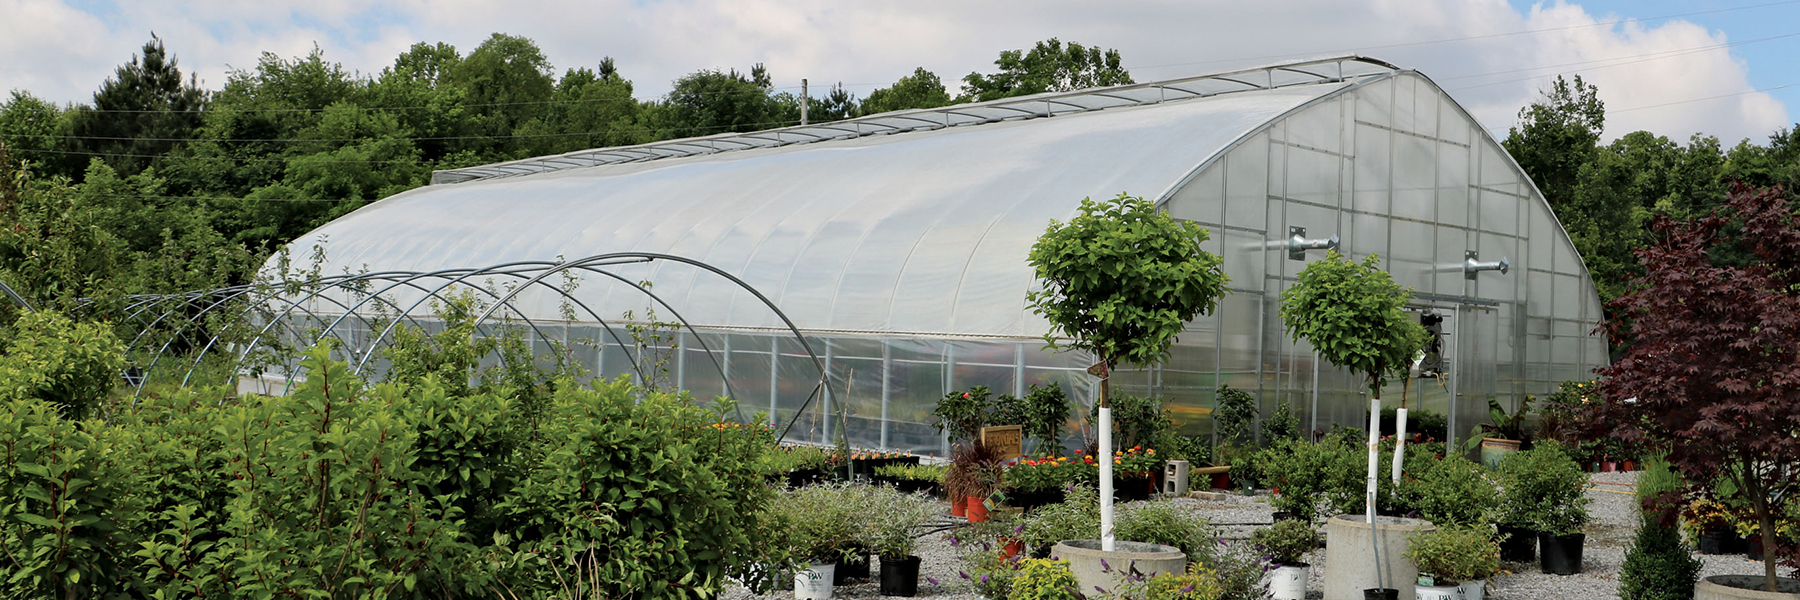 professional greenhouse farm